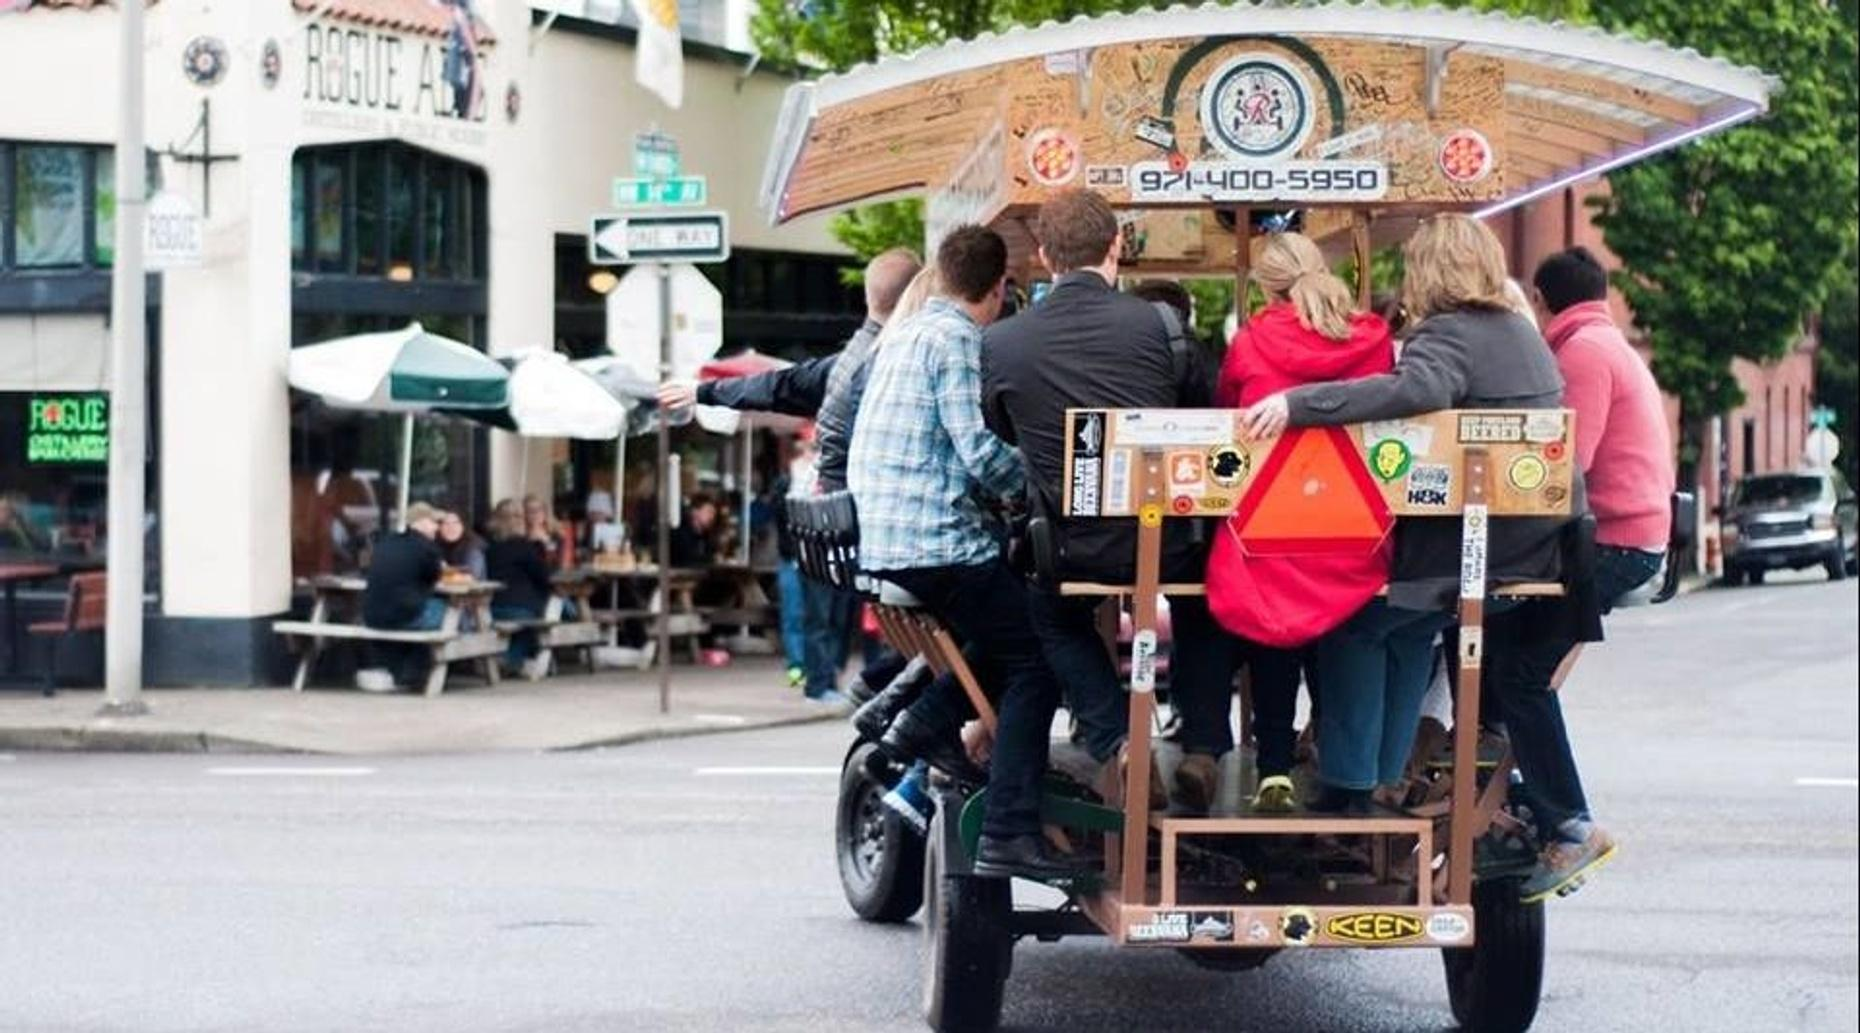 Pedal-Powered Beer Tour of Portland - Northwest Route